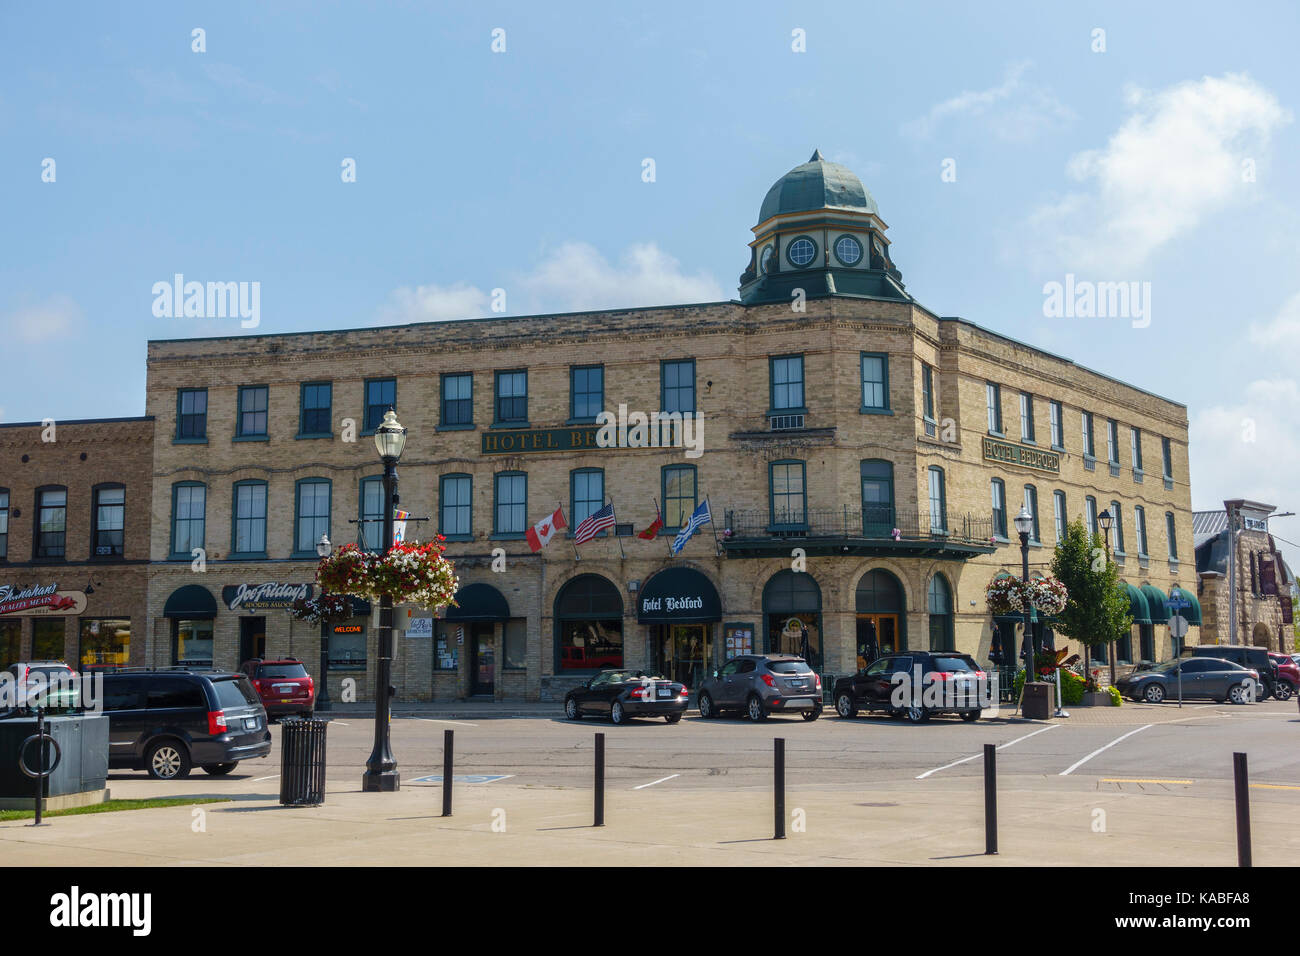 The Hotel Bedford In Goderich Town Centre A Heritage Building Ontario Canada, Goderich Voted The Prettiest Town - Stock Image